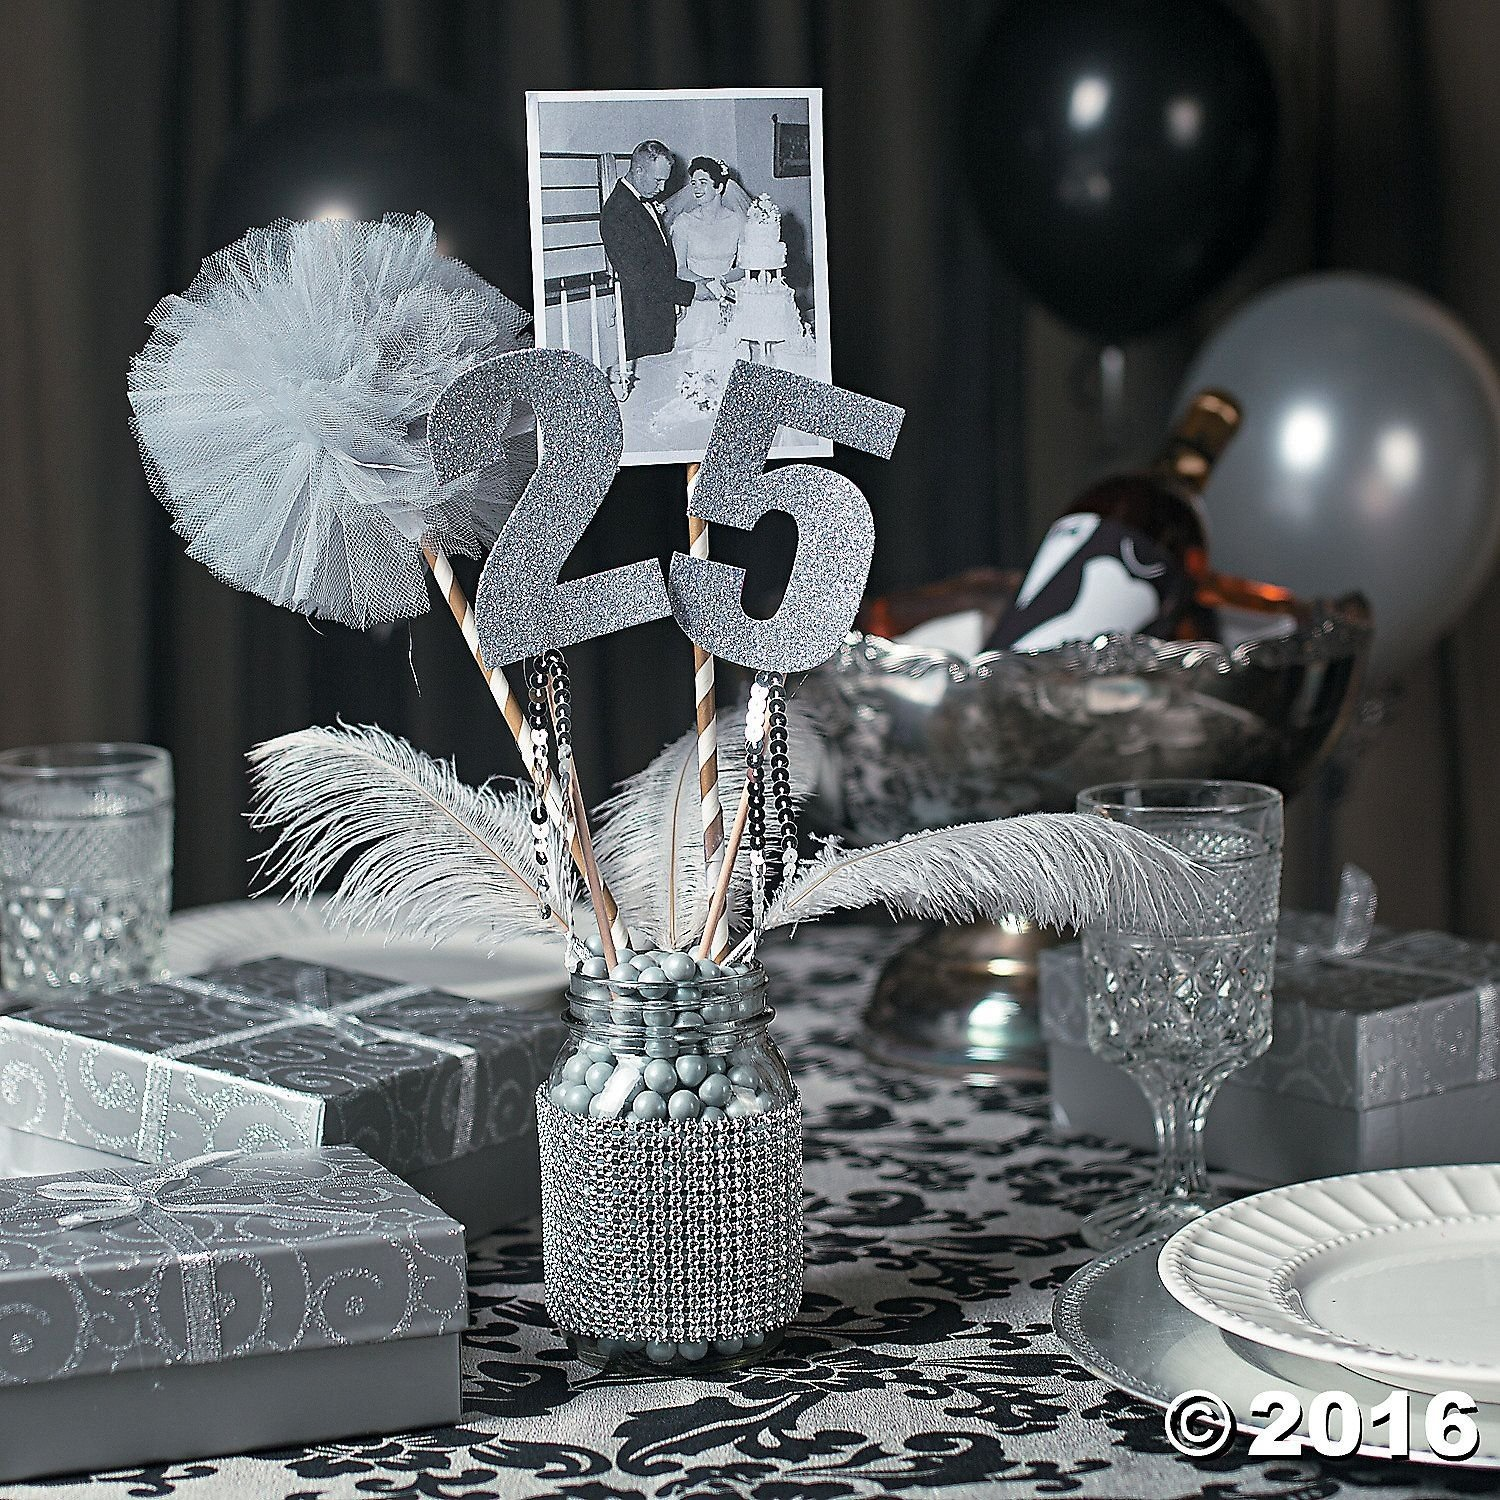 25th anniversary party mason jar centerpiece idea - orientaltrading